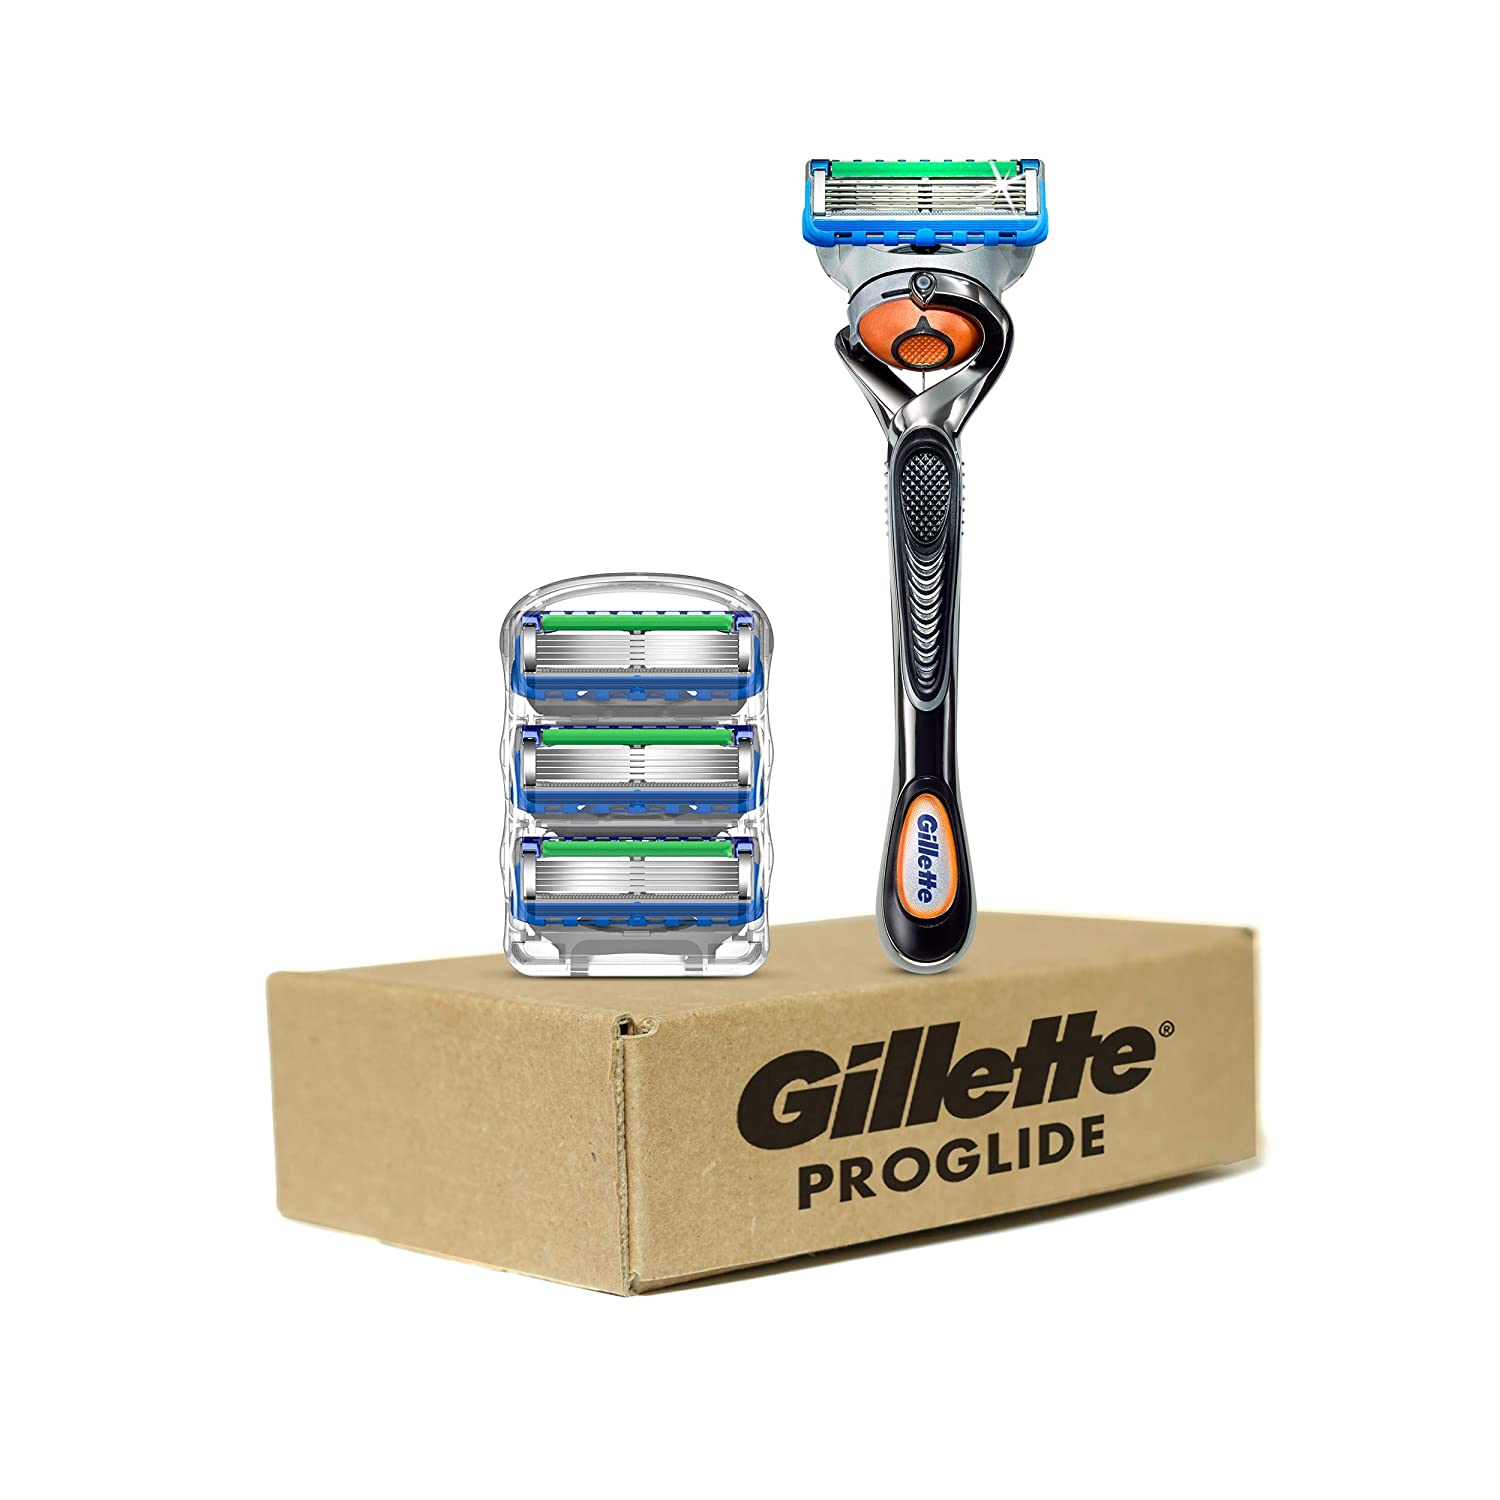 Gillette ProGlide Men's Razor Handle + 4 Blade Refills